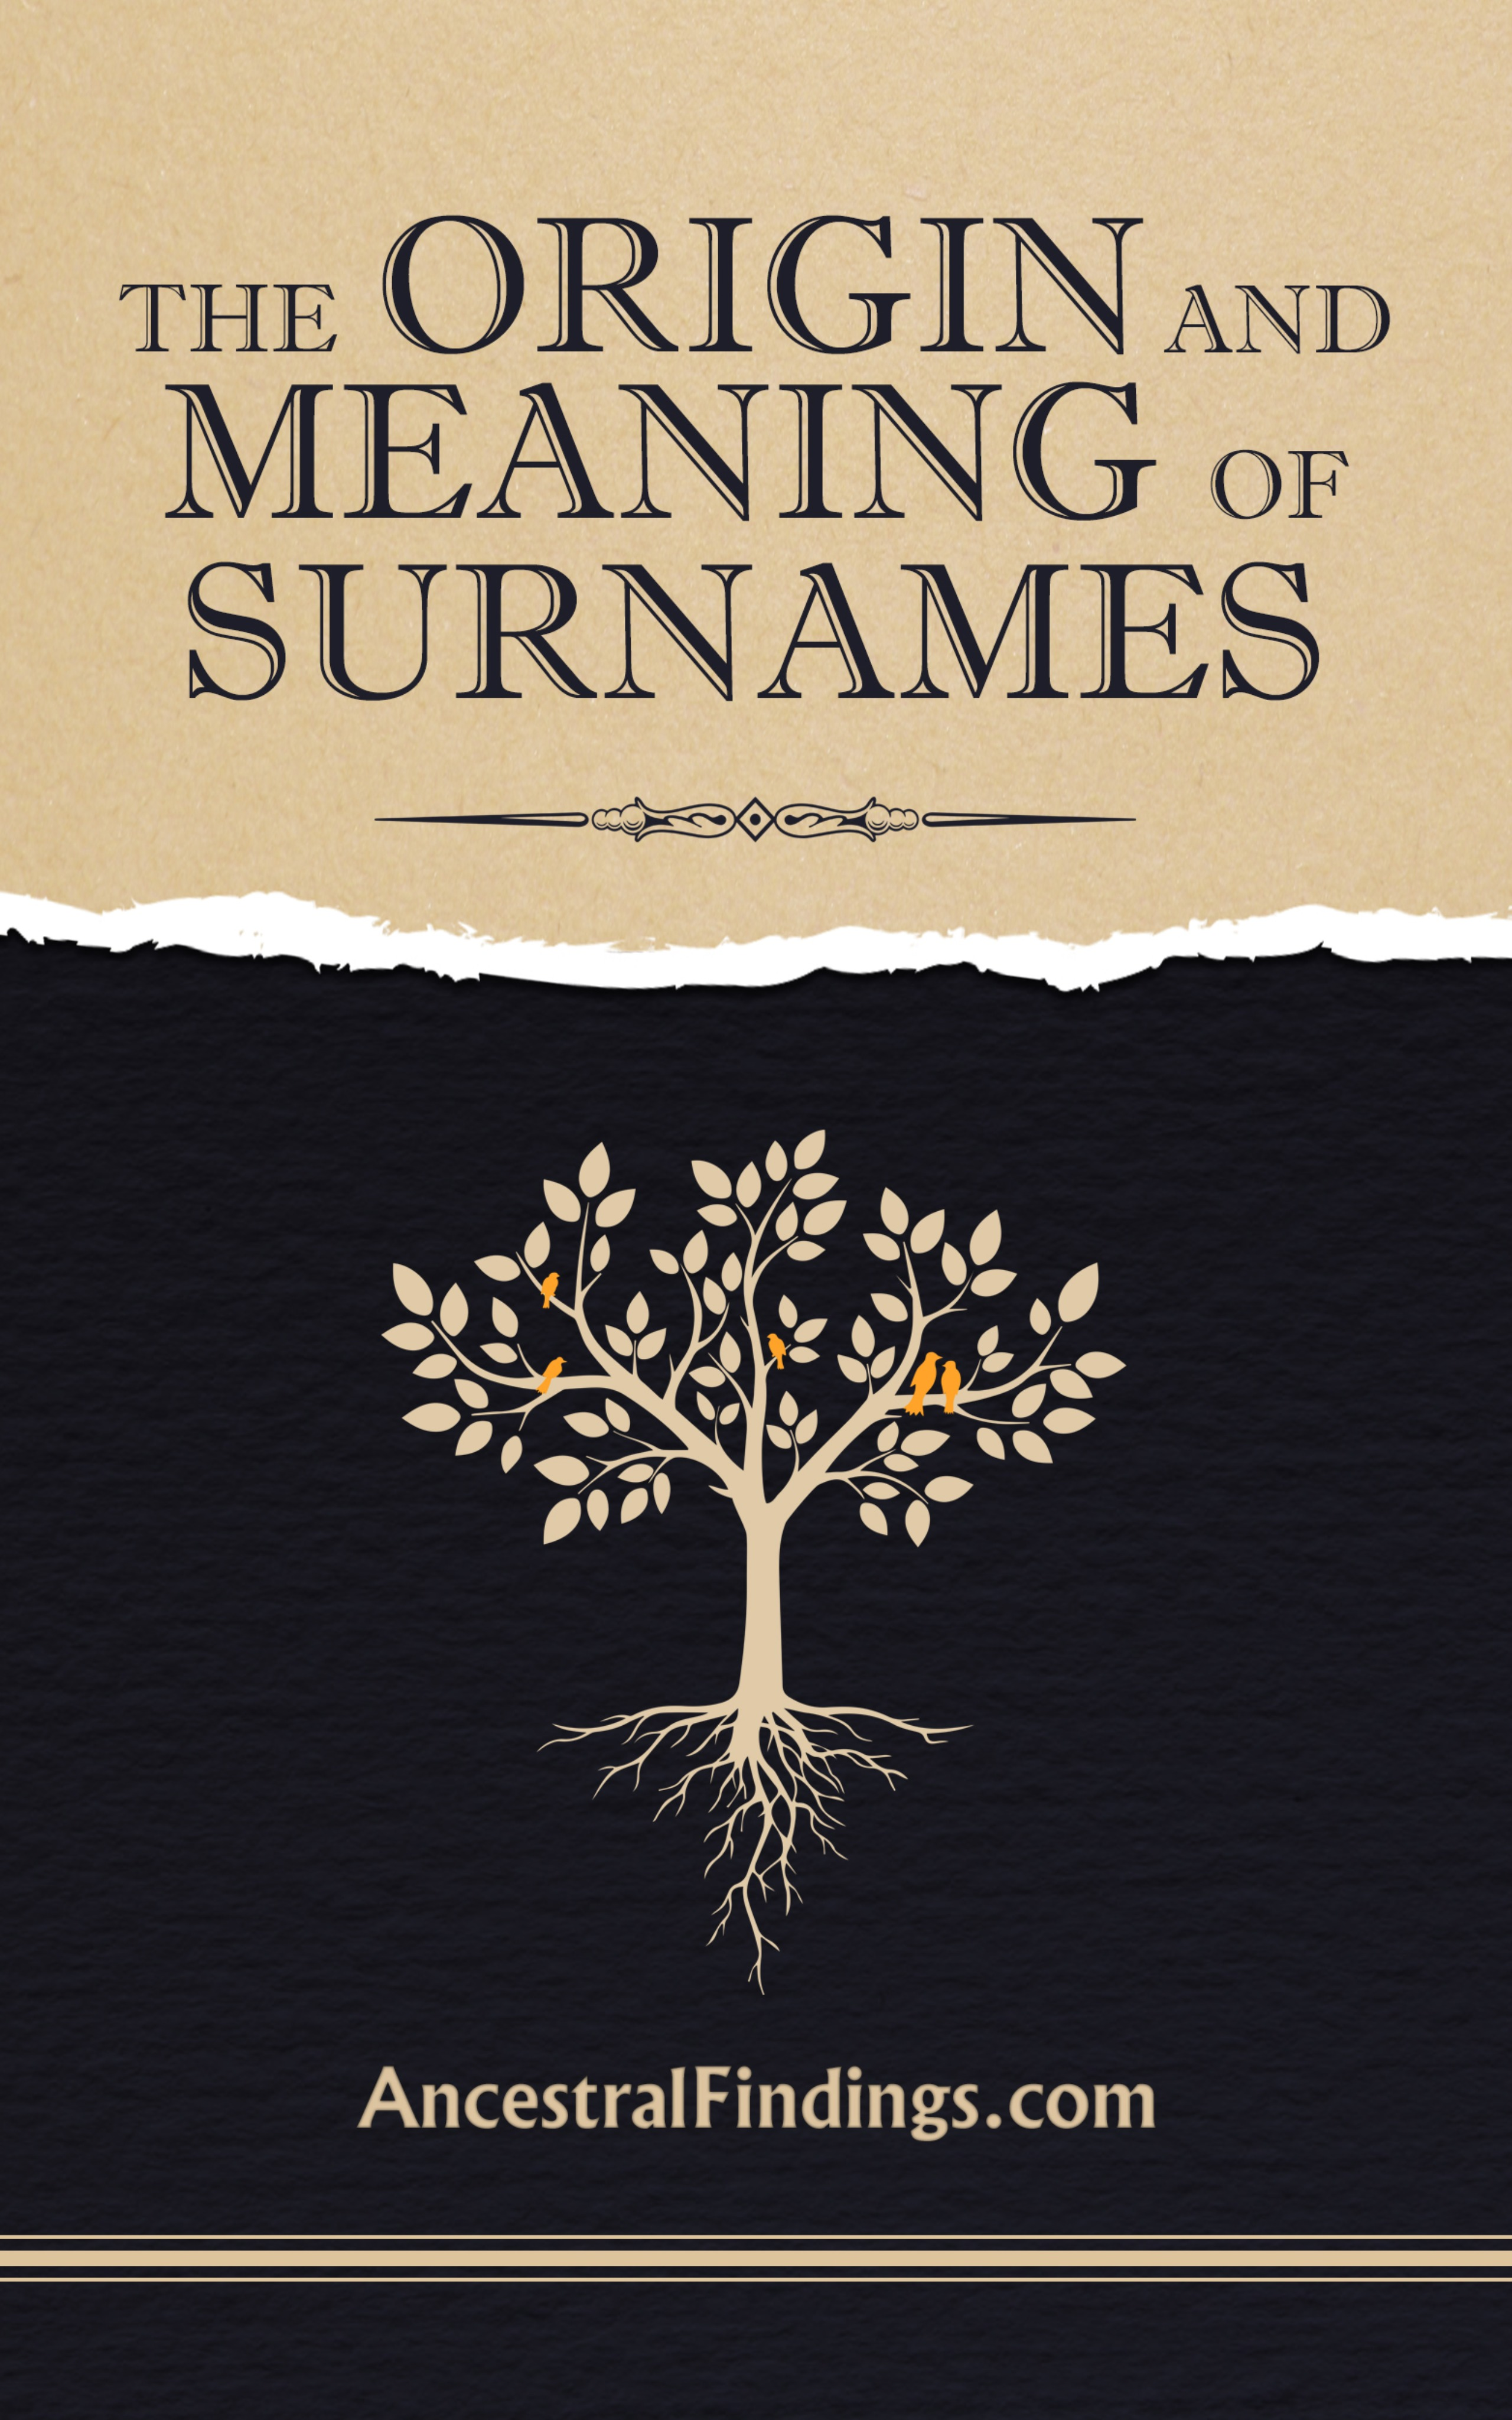 The Origin and Meaning of Surnames